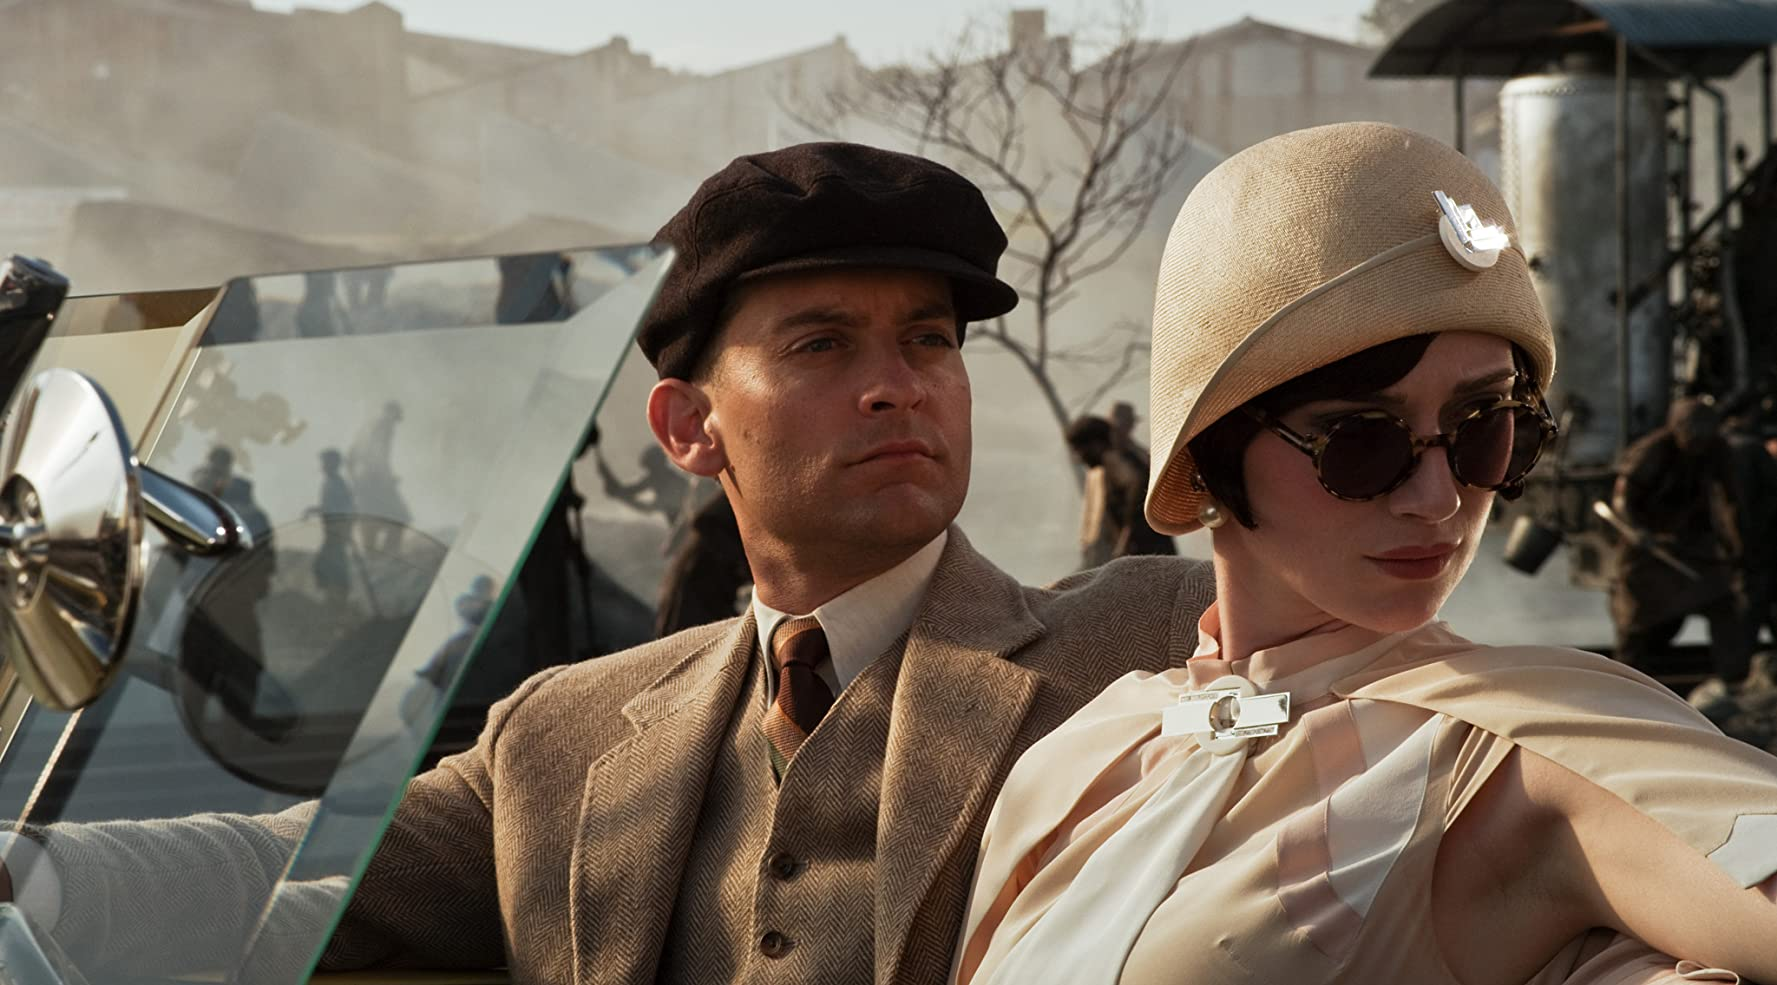 Tobey Maguire and Elizabeth Debicki in The Great Gatsby (2013)